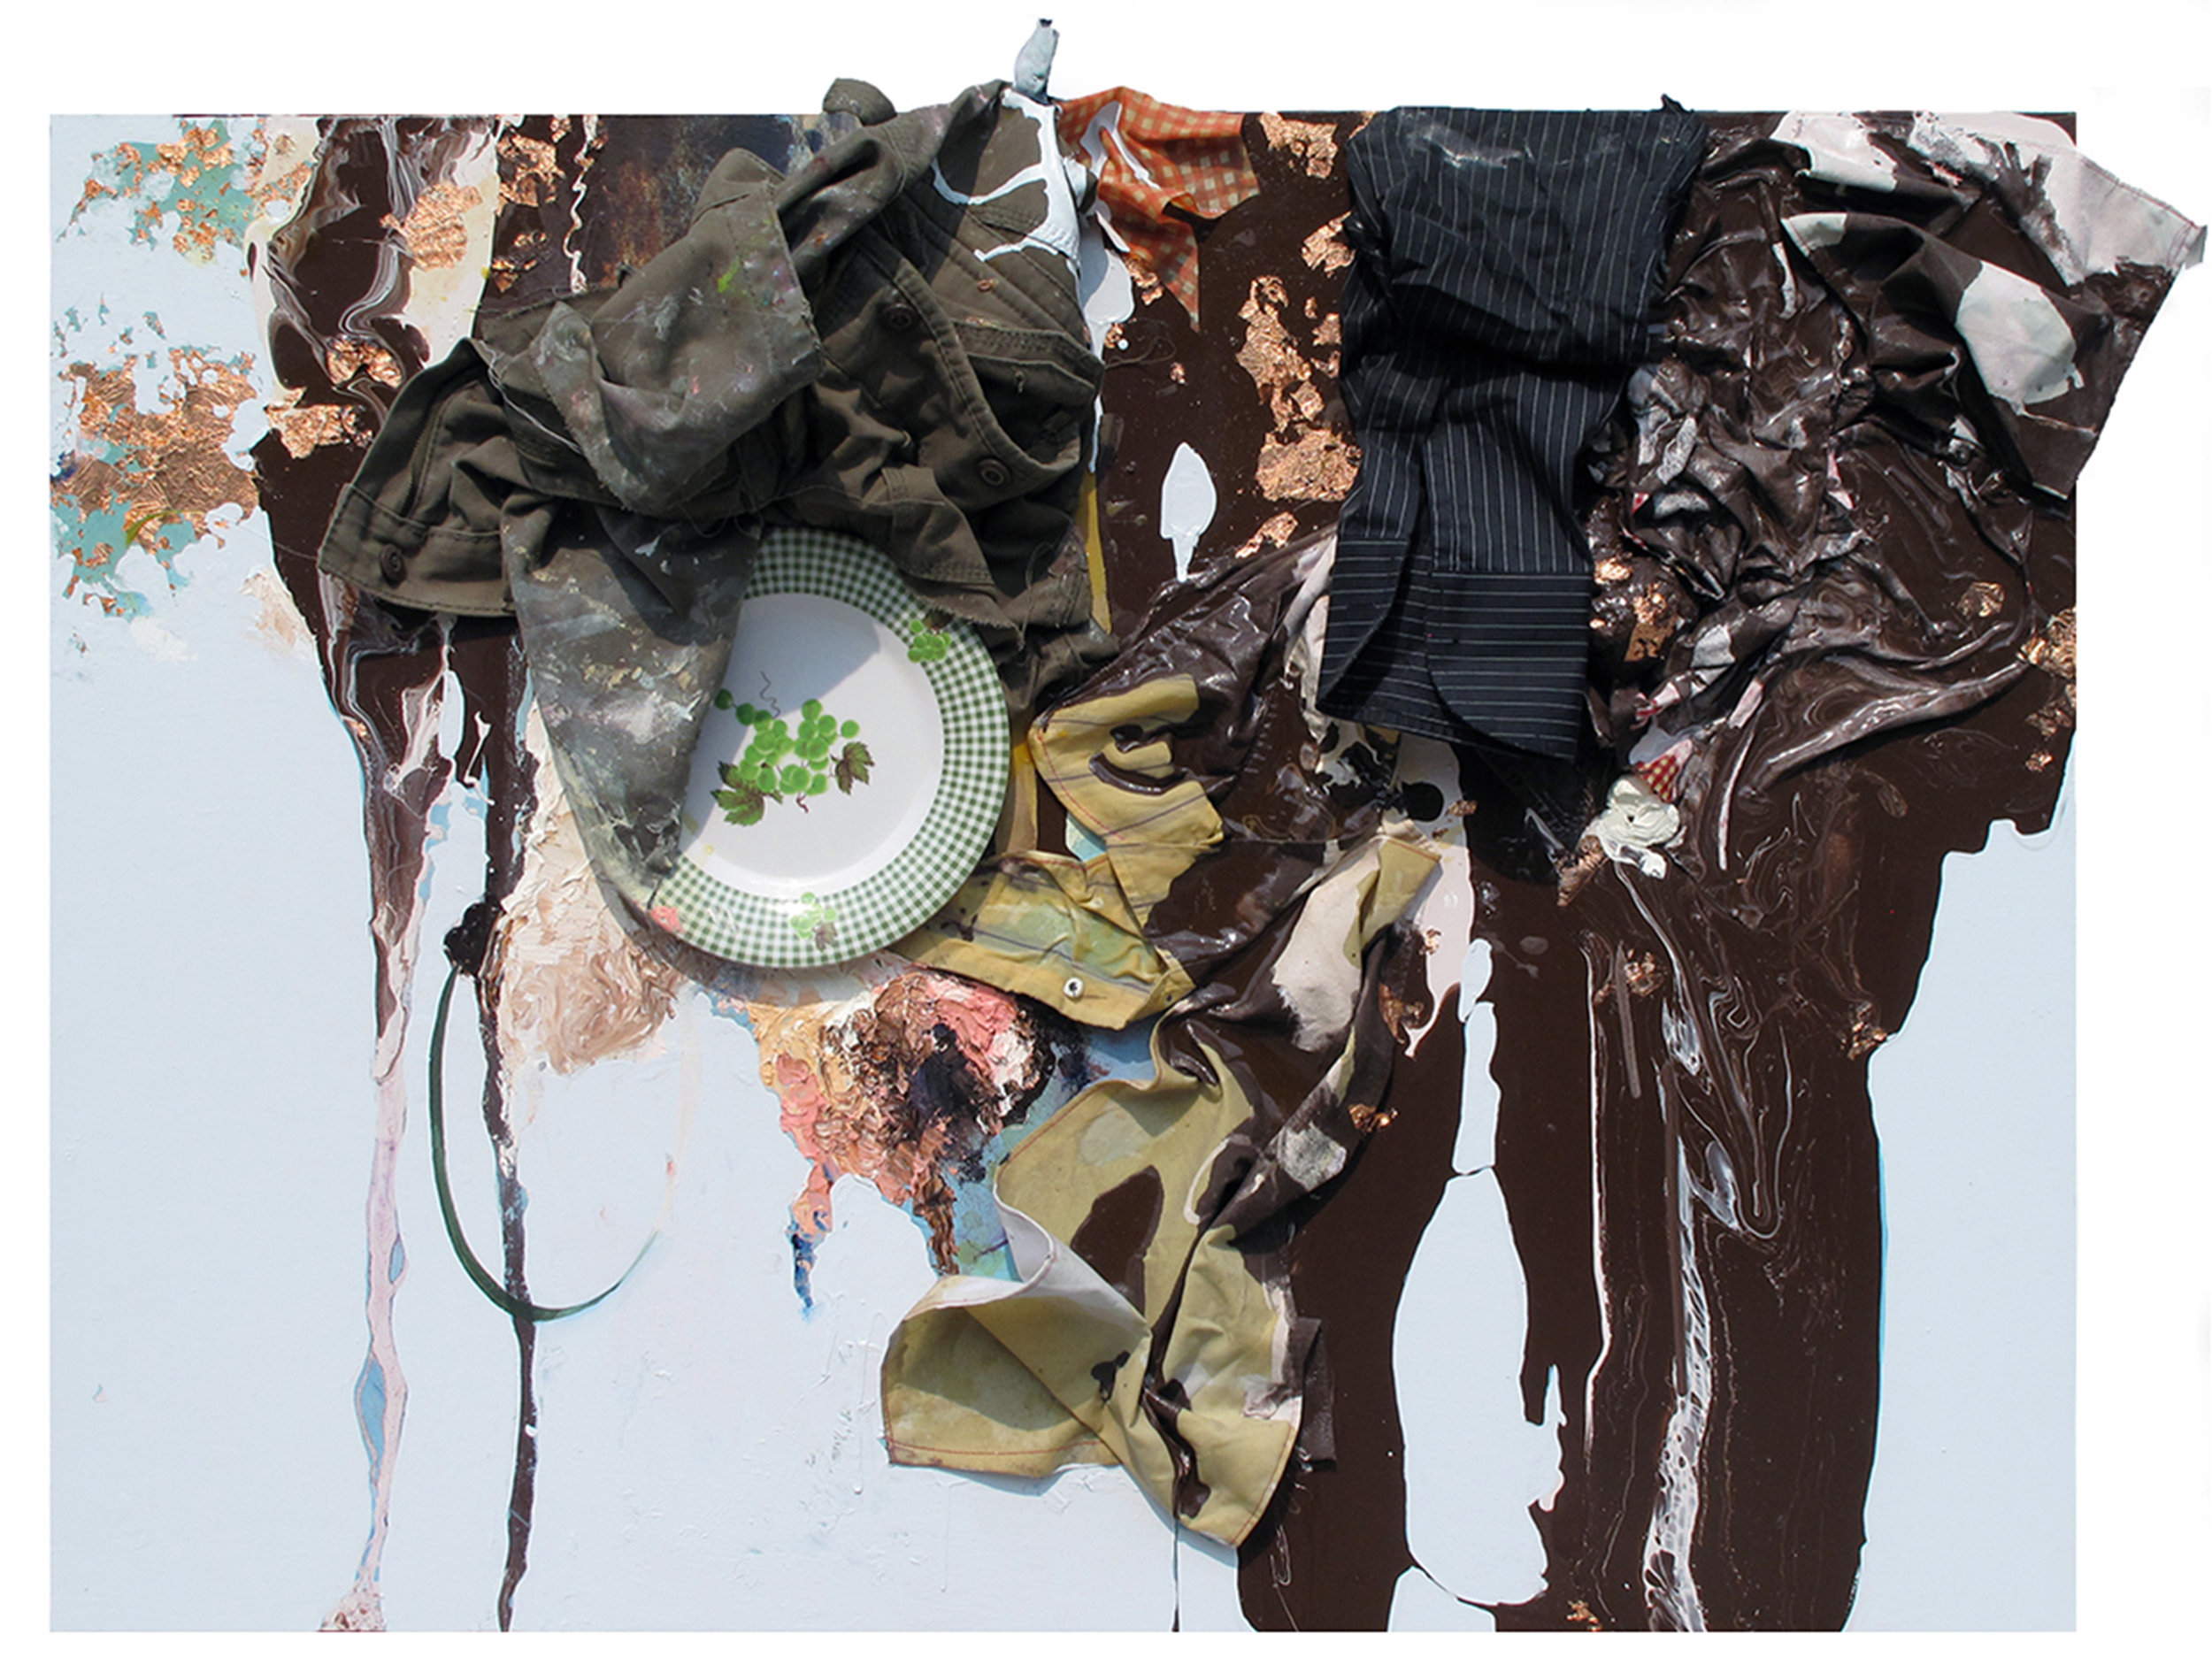 greenhowiwantyougreen... verdeluna, 2013                                                   30 x 40 inches.                                                                                                                      Oil, enamel, costume, gold leaf and plate on birch panel.